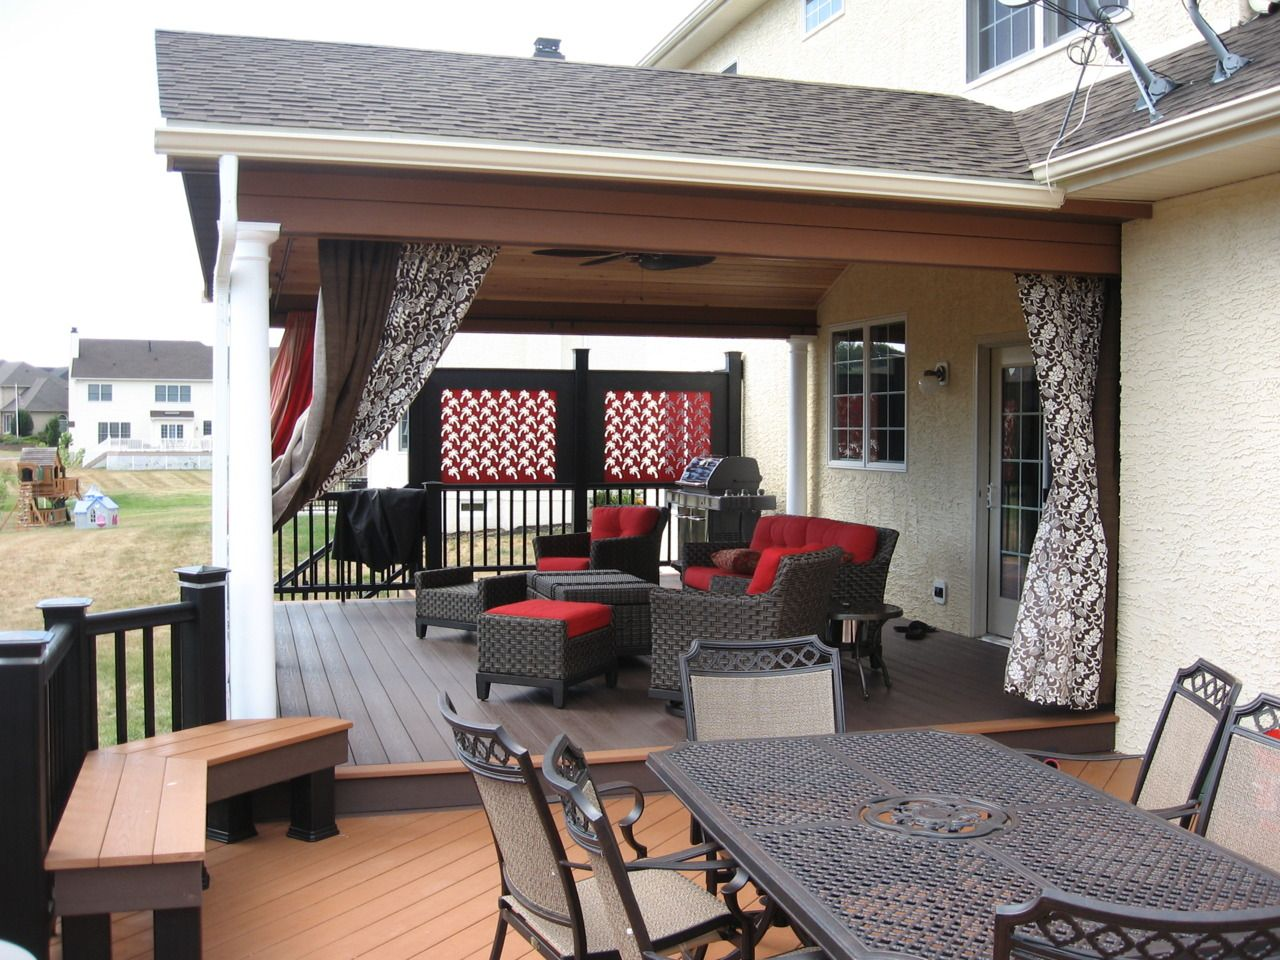 If you really want to create an outdoor extension of your house, include a covered area in your deck design.   It creates a cozier atmosphere at night as well as more usable space during a rainy day.  If you want to entertain the option of installing a roof or independent canopy on your deck, visit www.centralpadeckdesign.com. Deck Photo is Courtesy of Keystone Custom Decks